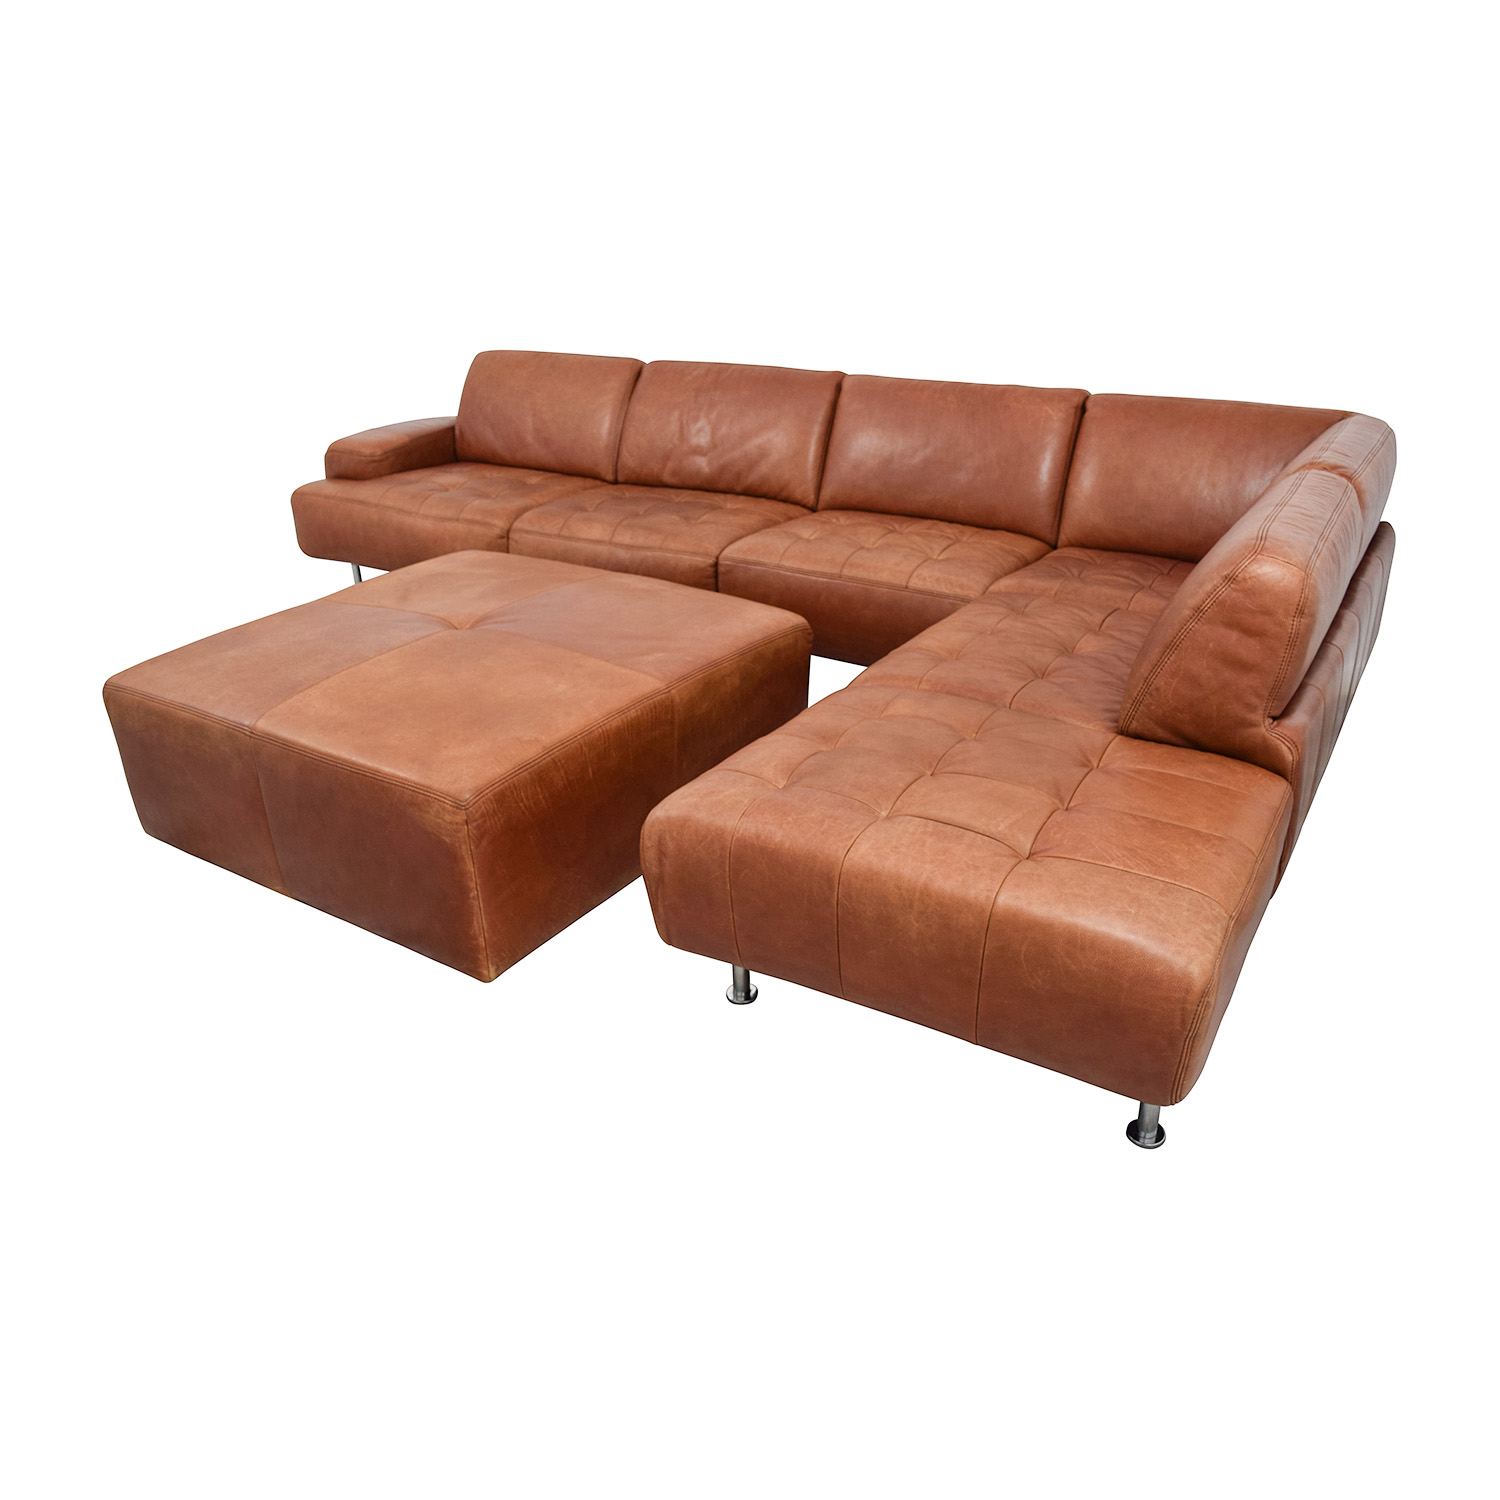 46 off w schillig w schillig leather sectional with ottoman sofas. Black Bedroom Furniture Sets. Home Design Ideas